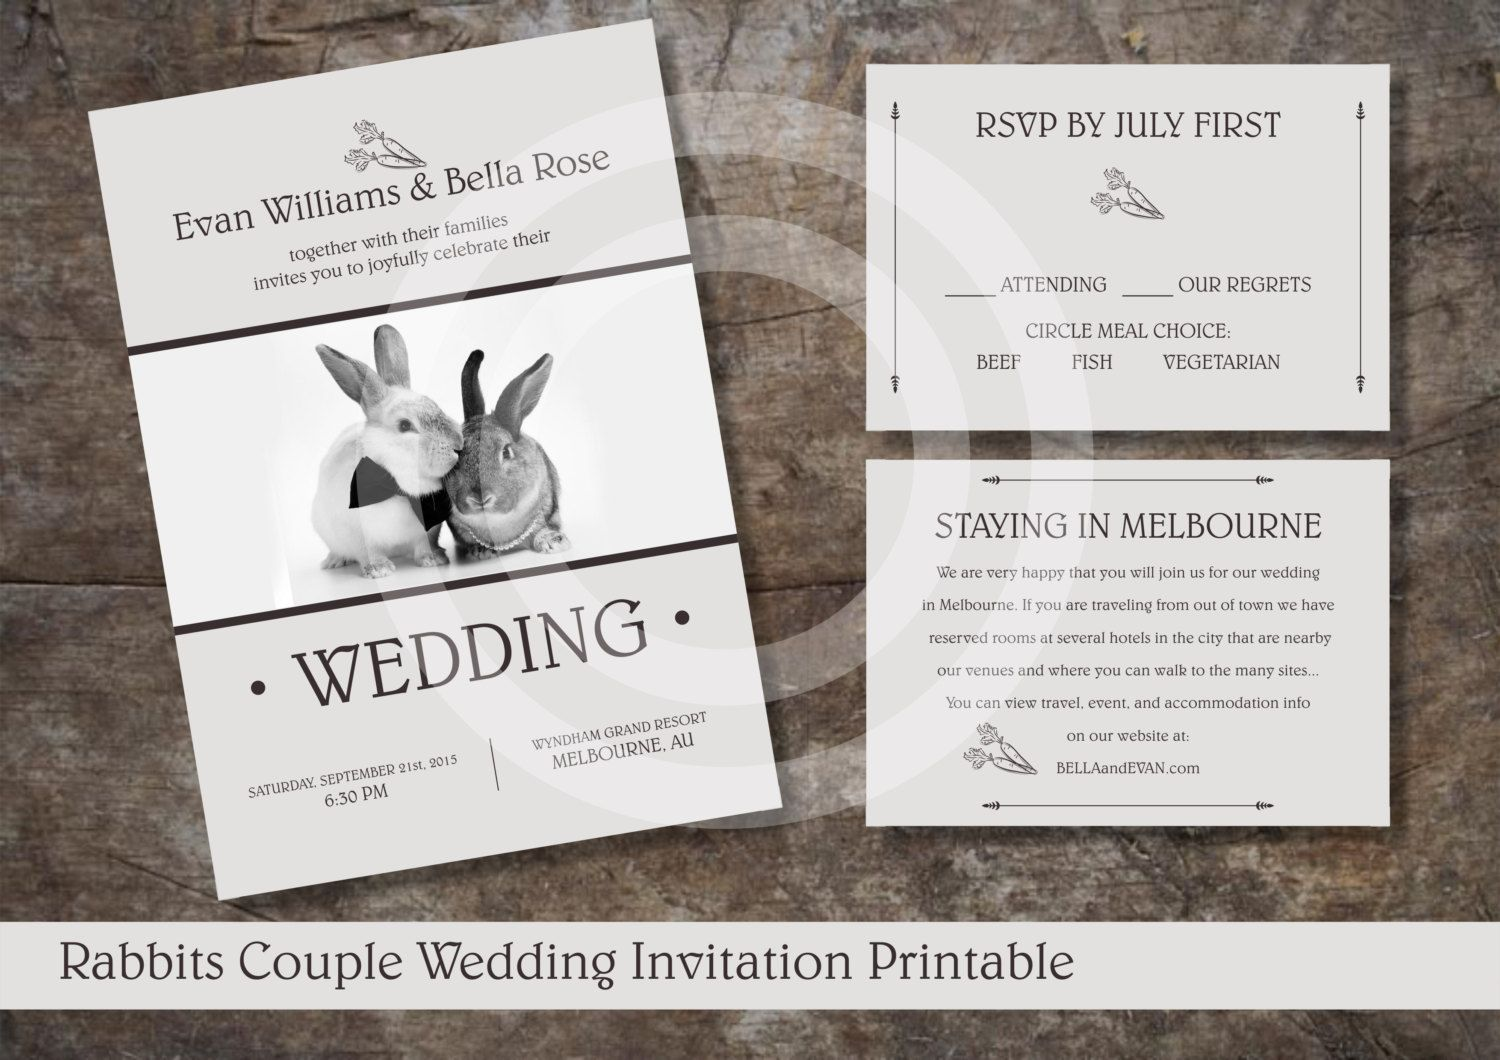 RABBITS COUPLE WEDDING Invitation Printable / Retro Style Wedding Invitation / Rsvp and Info Card Included by OstrichSistersDigits on Etsy